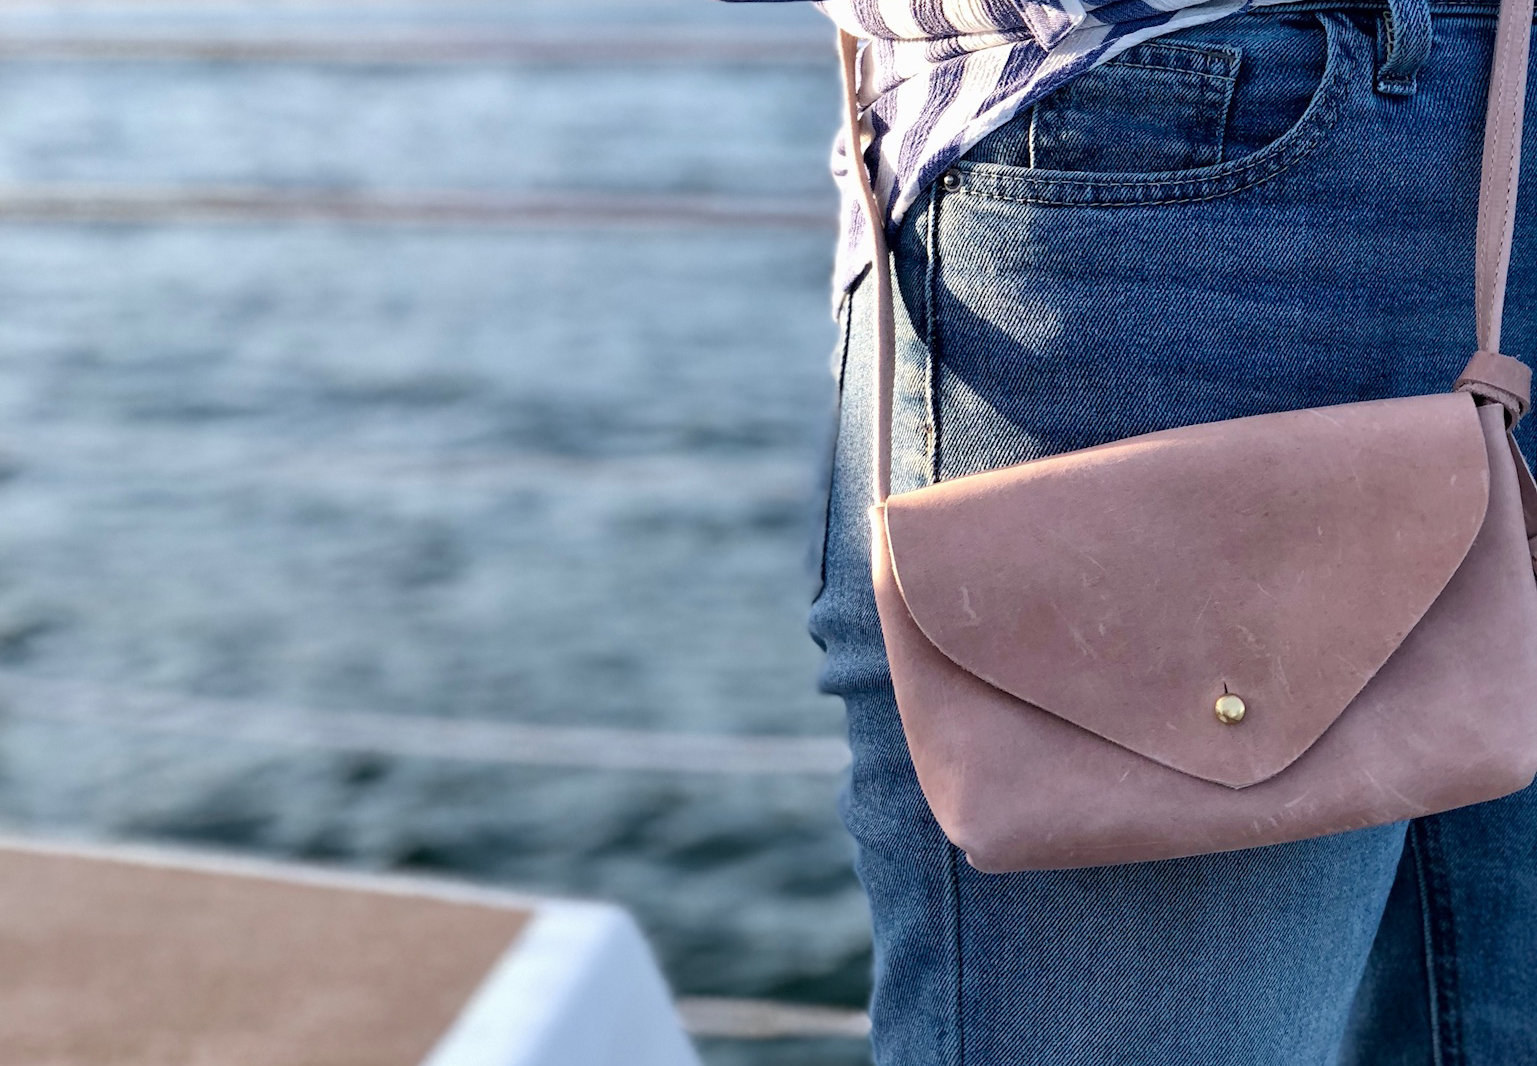 Parker-Clay-hands-free-cross-body.jpg?mtime=20180802150956#asset:102758